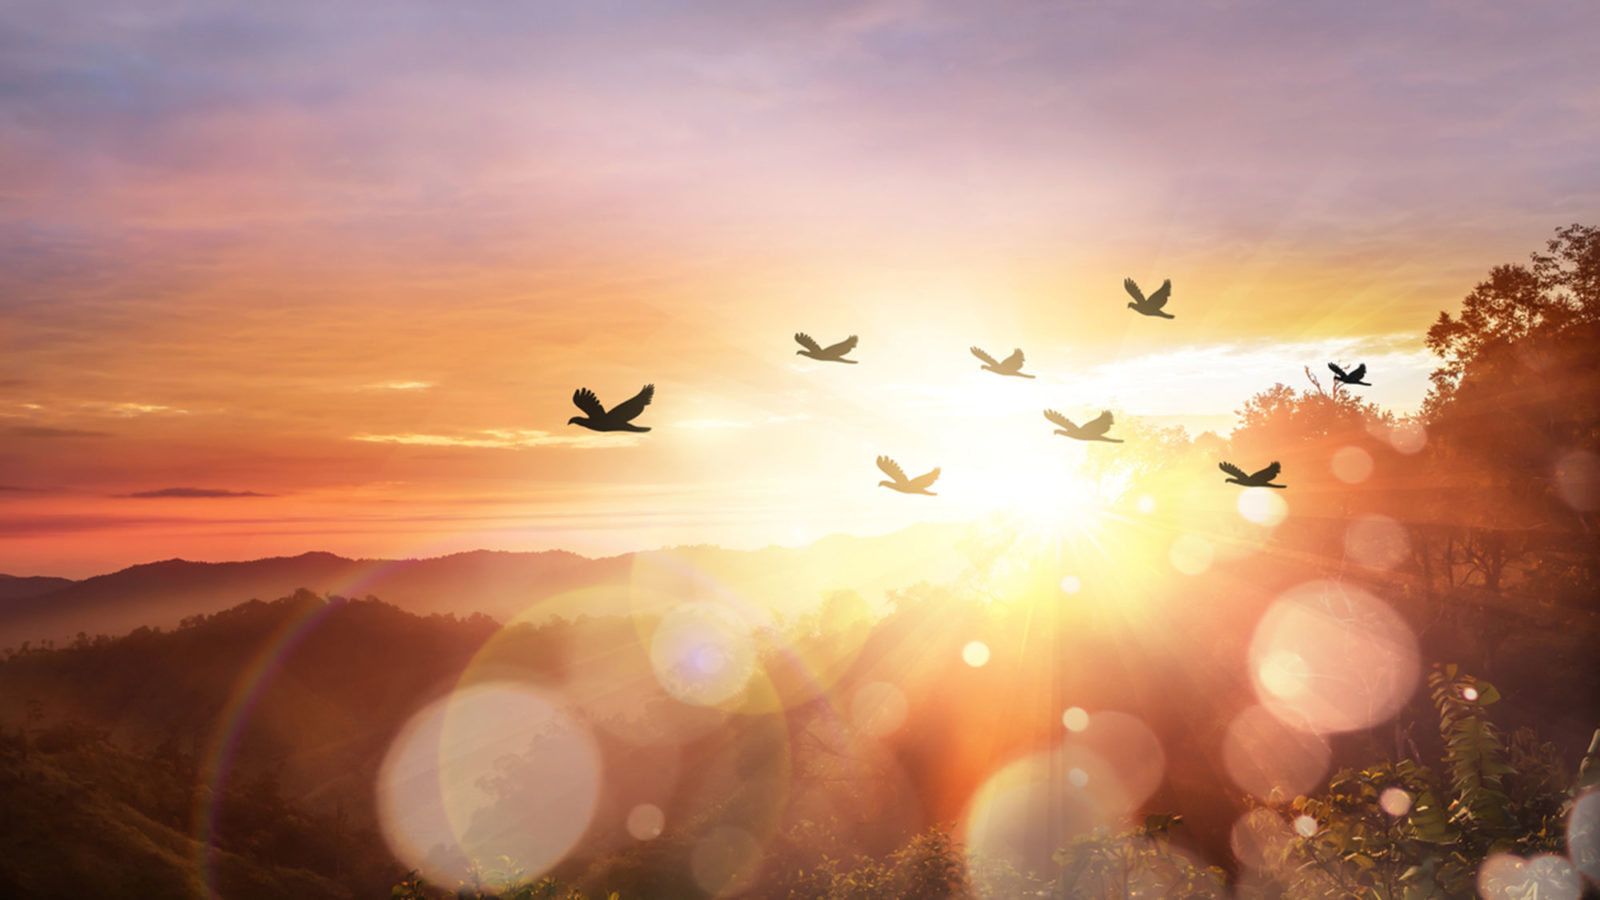 Birds flying in the sky with the sun shining in the background.